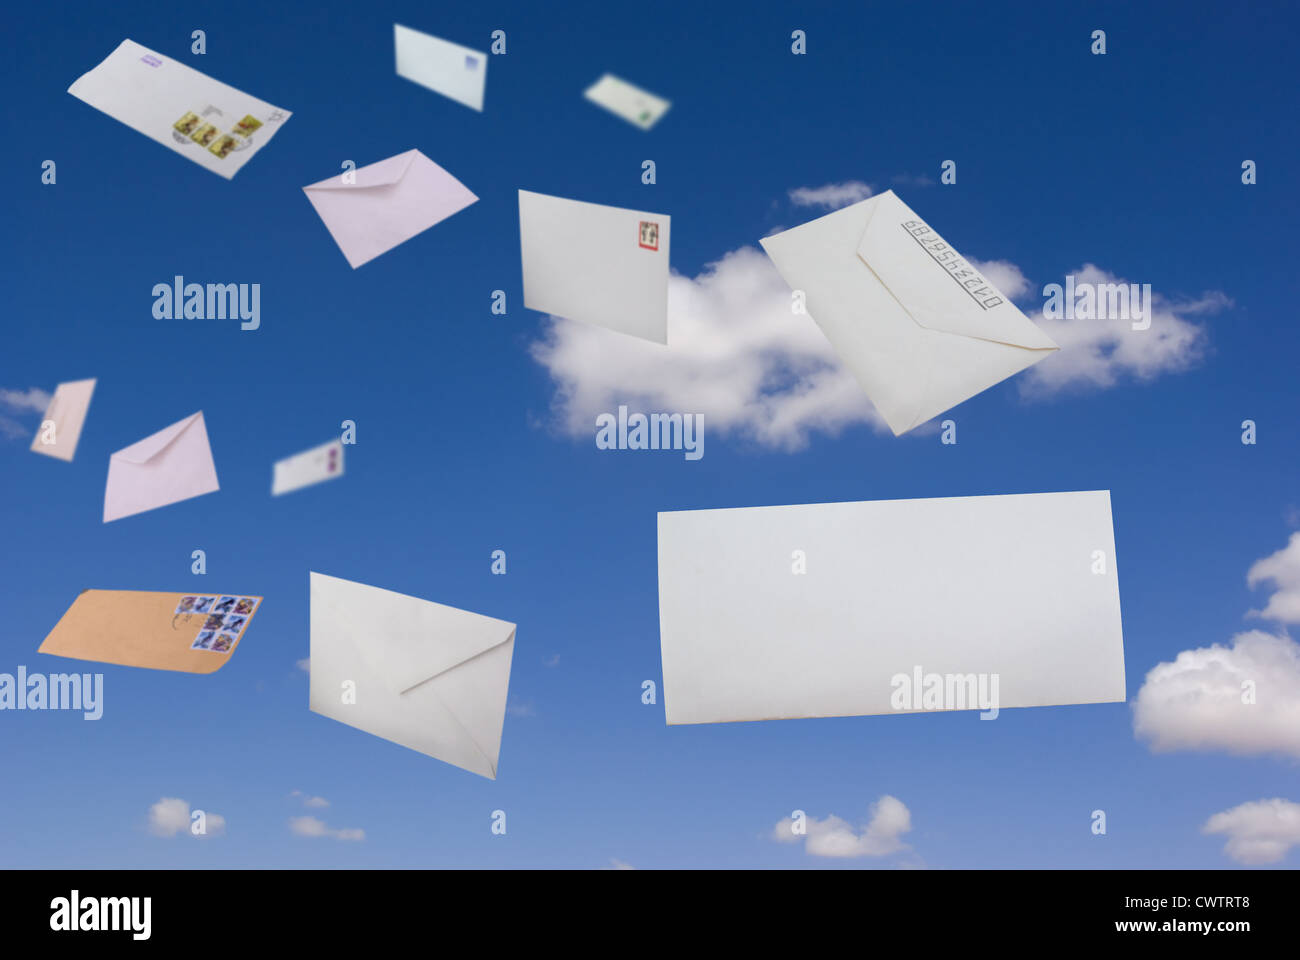 Envelopes flying against the blue sky and clouds - Stock Image